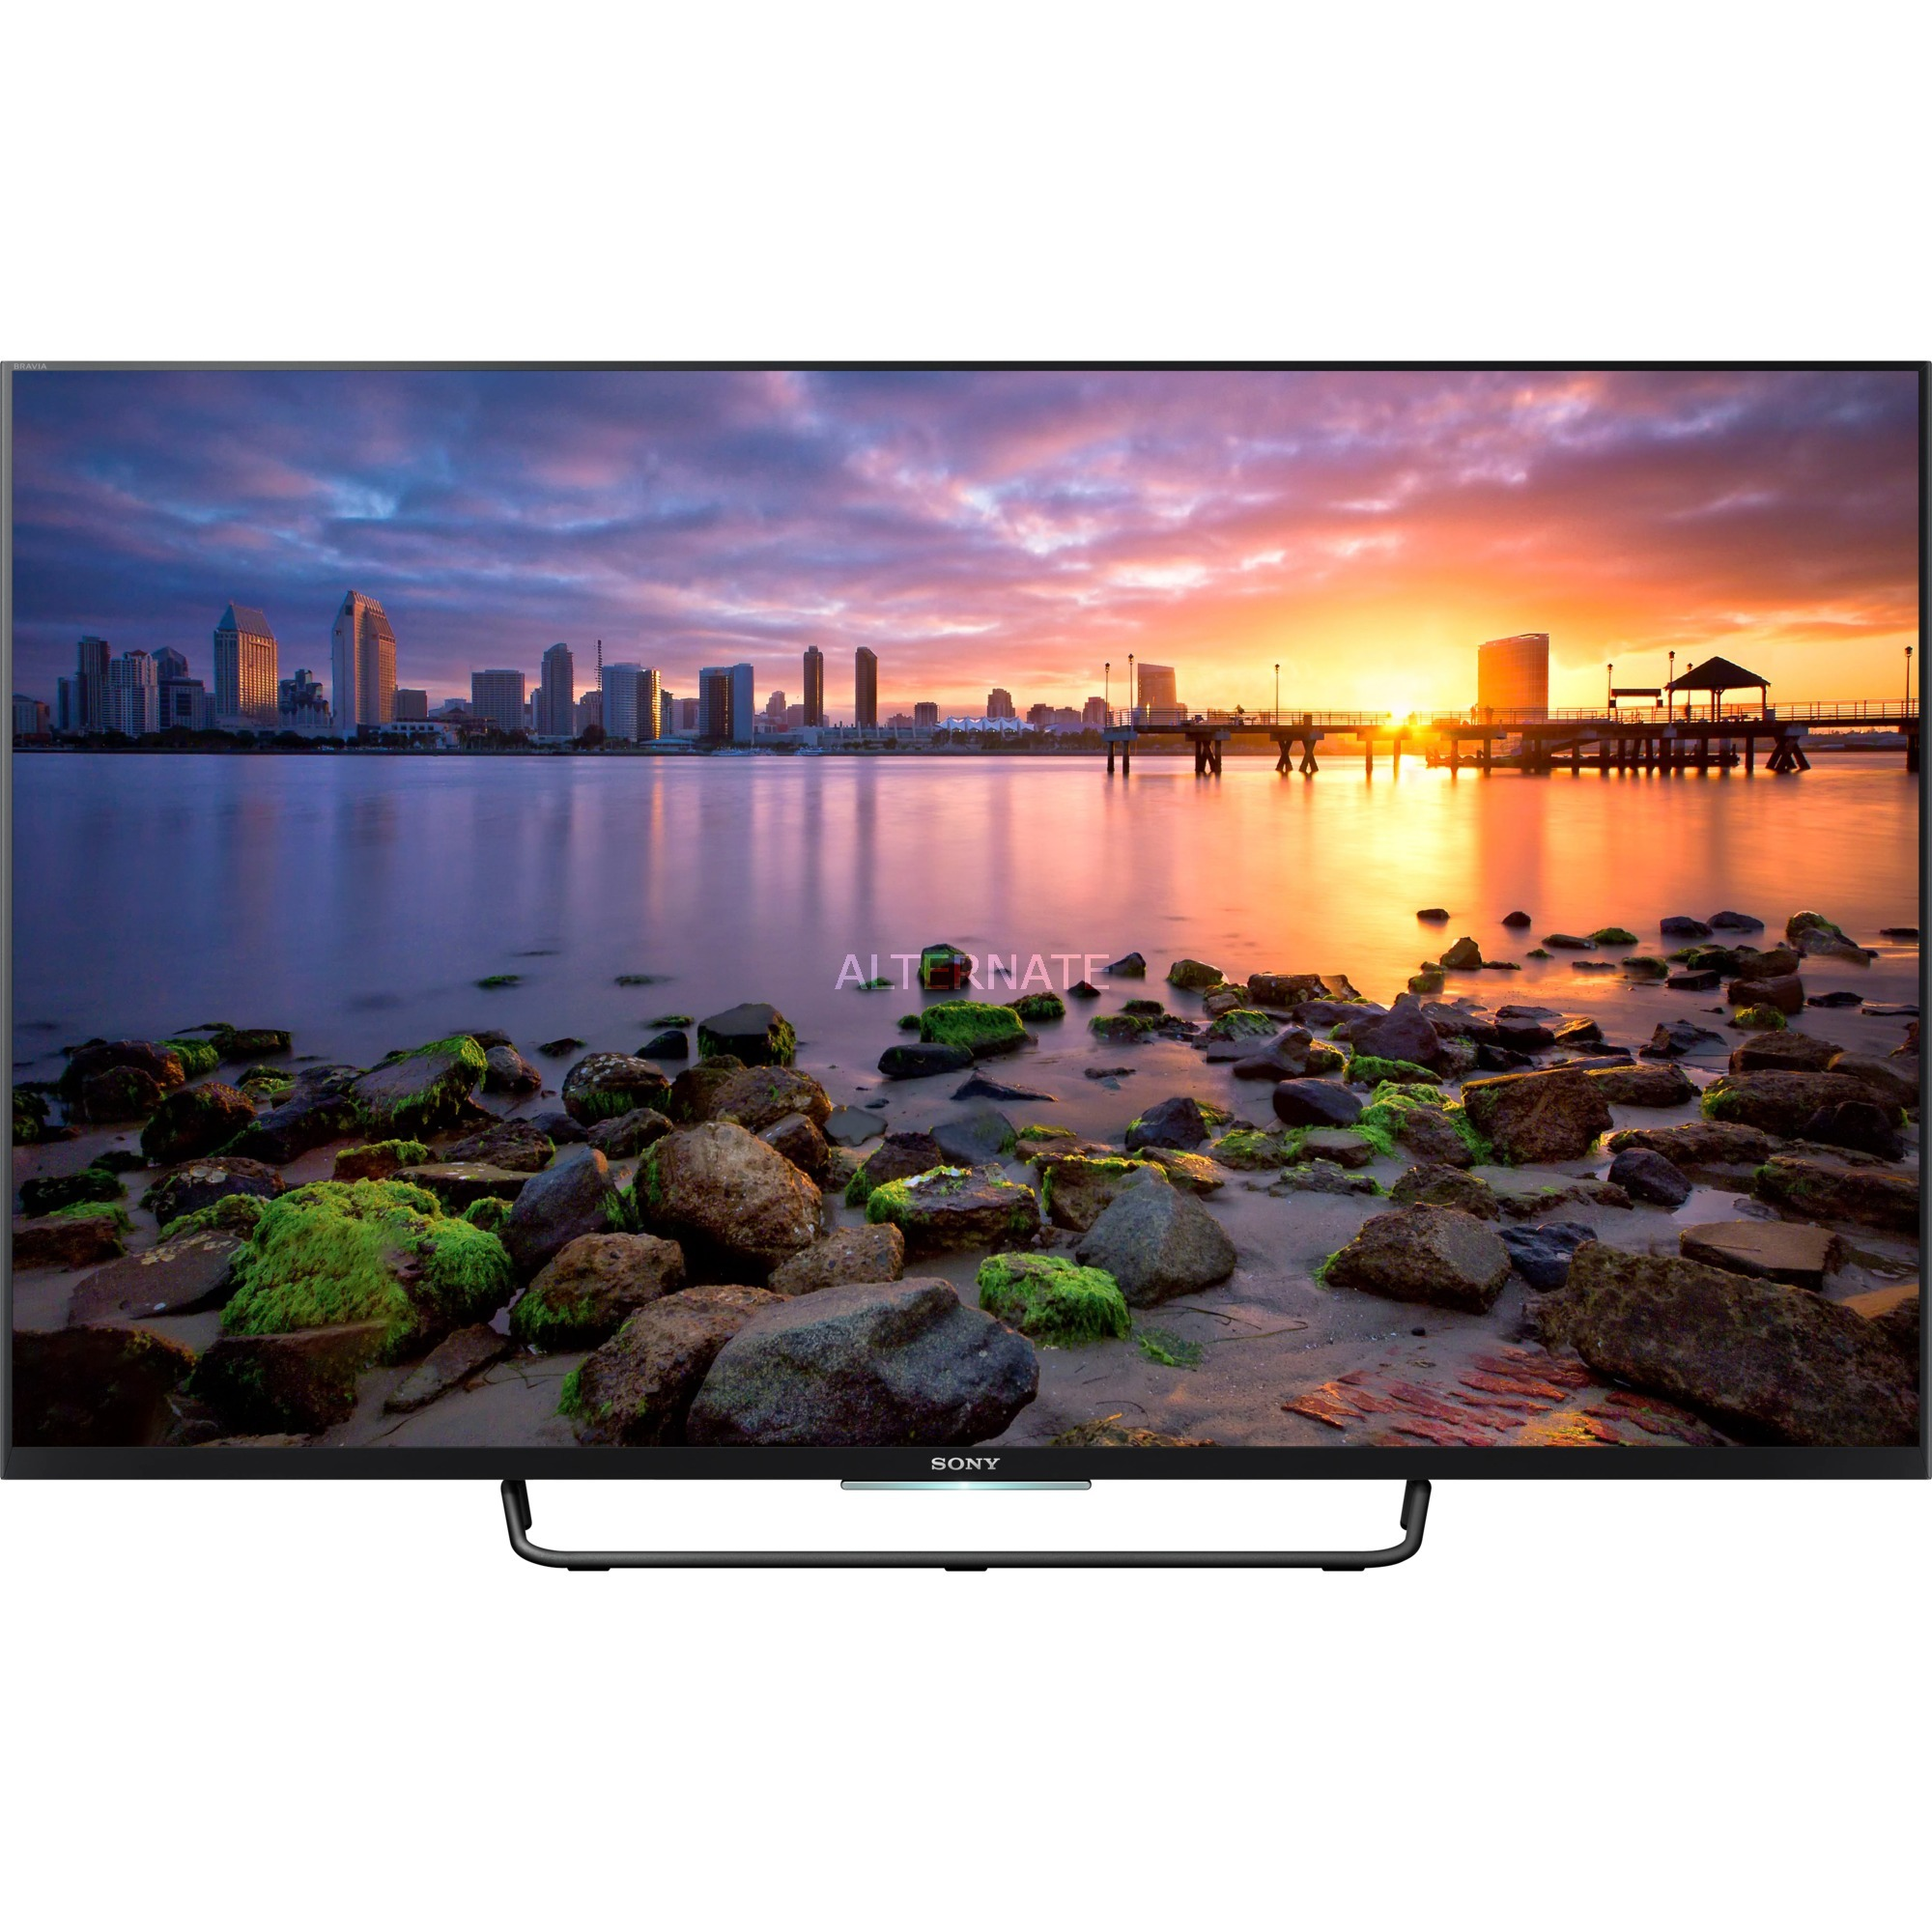 tv sony led 117 cm pas cher achat t l vision. Black Bedroom Furniture Sets. Home Design Ideas